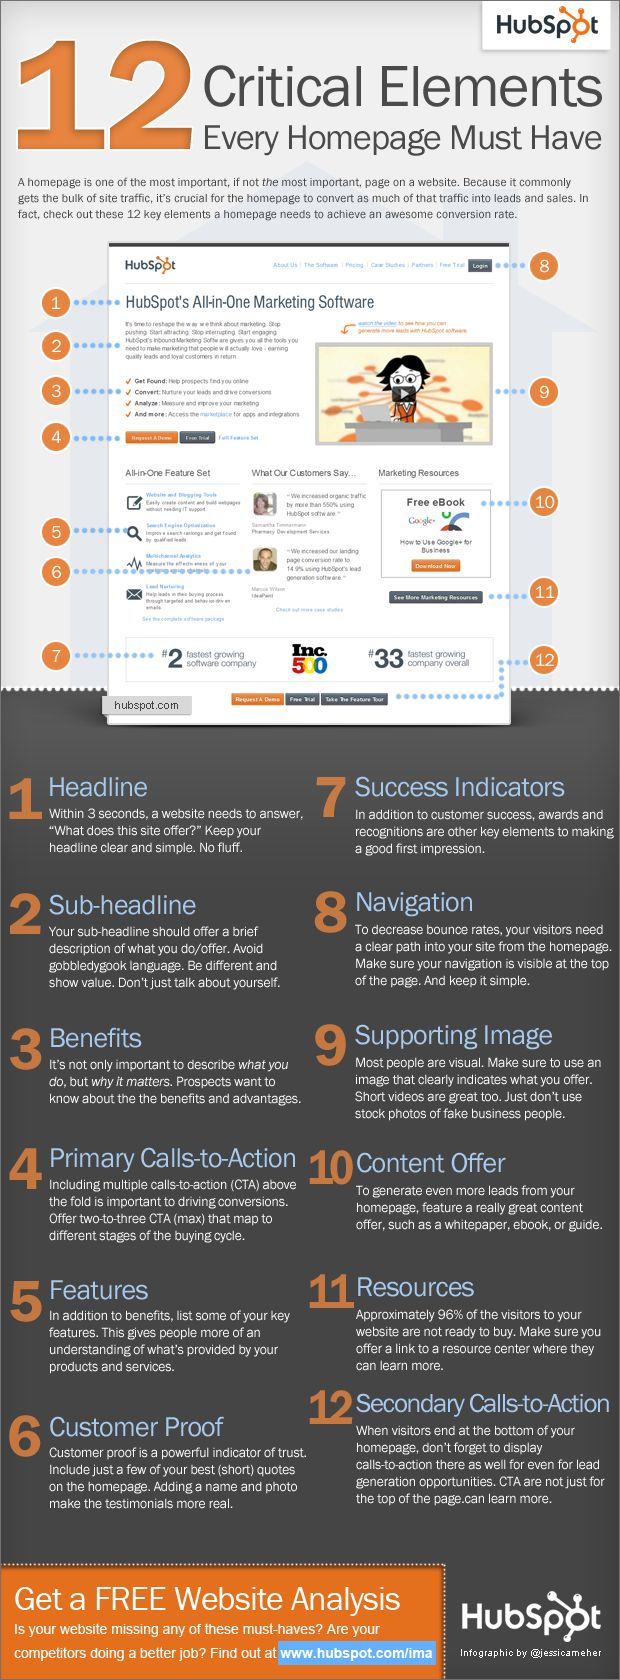 12 Critical Elements of a Homepage #Infographic by HubSpot